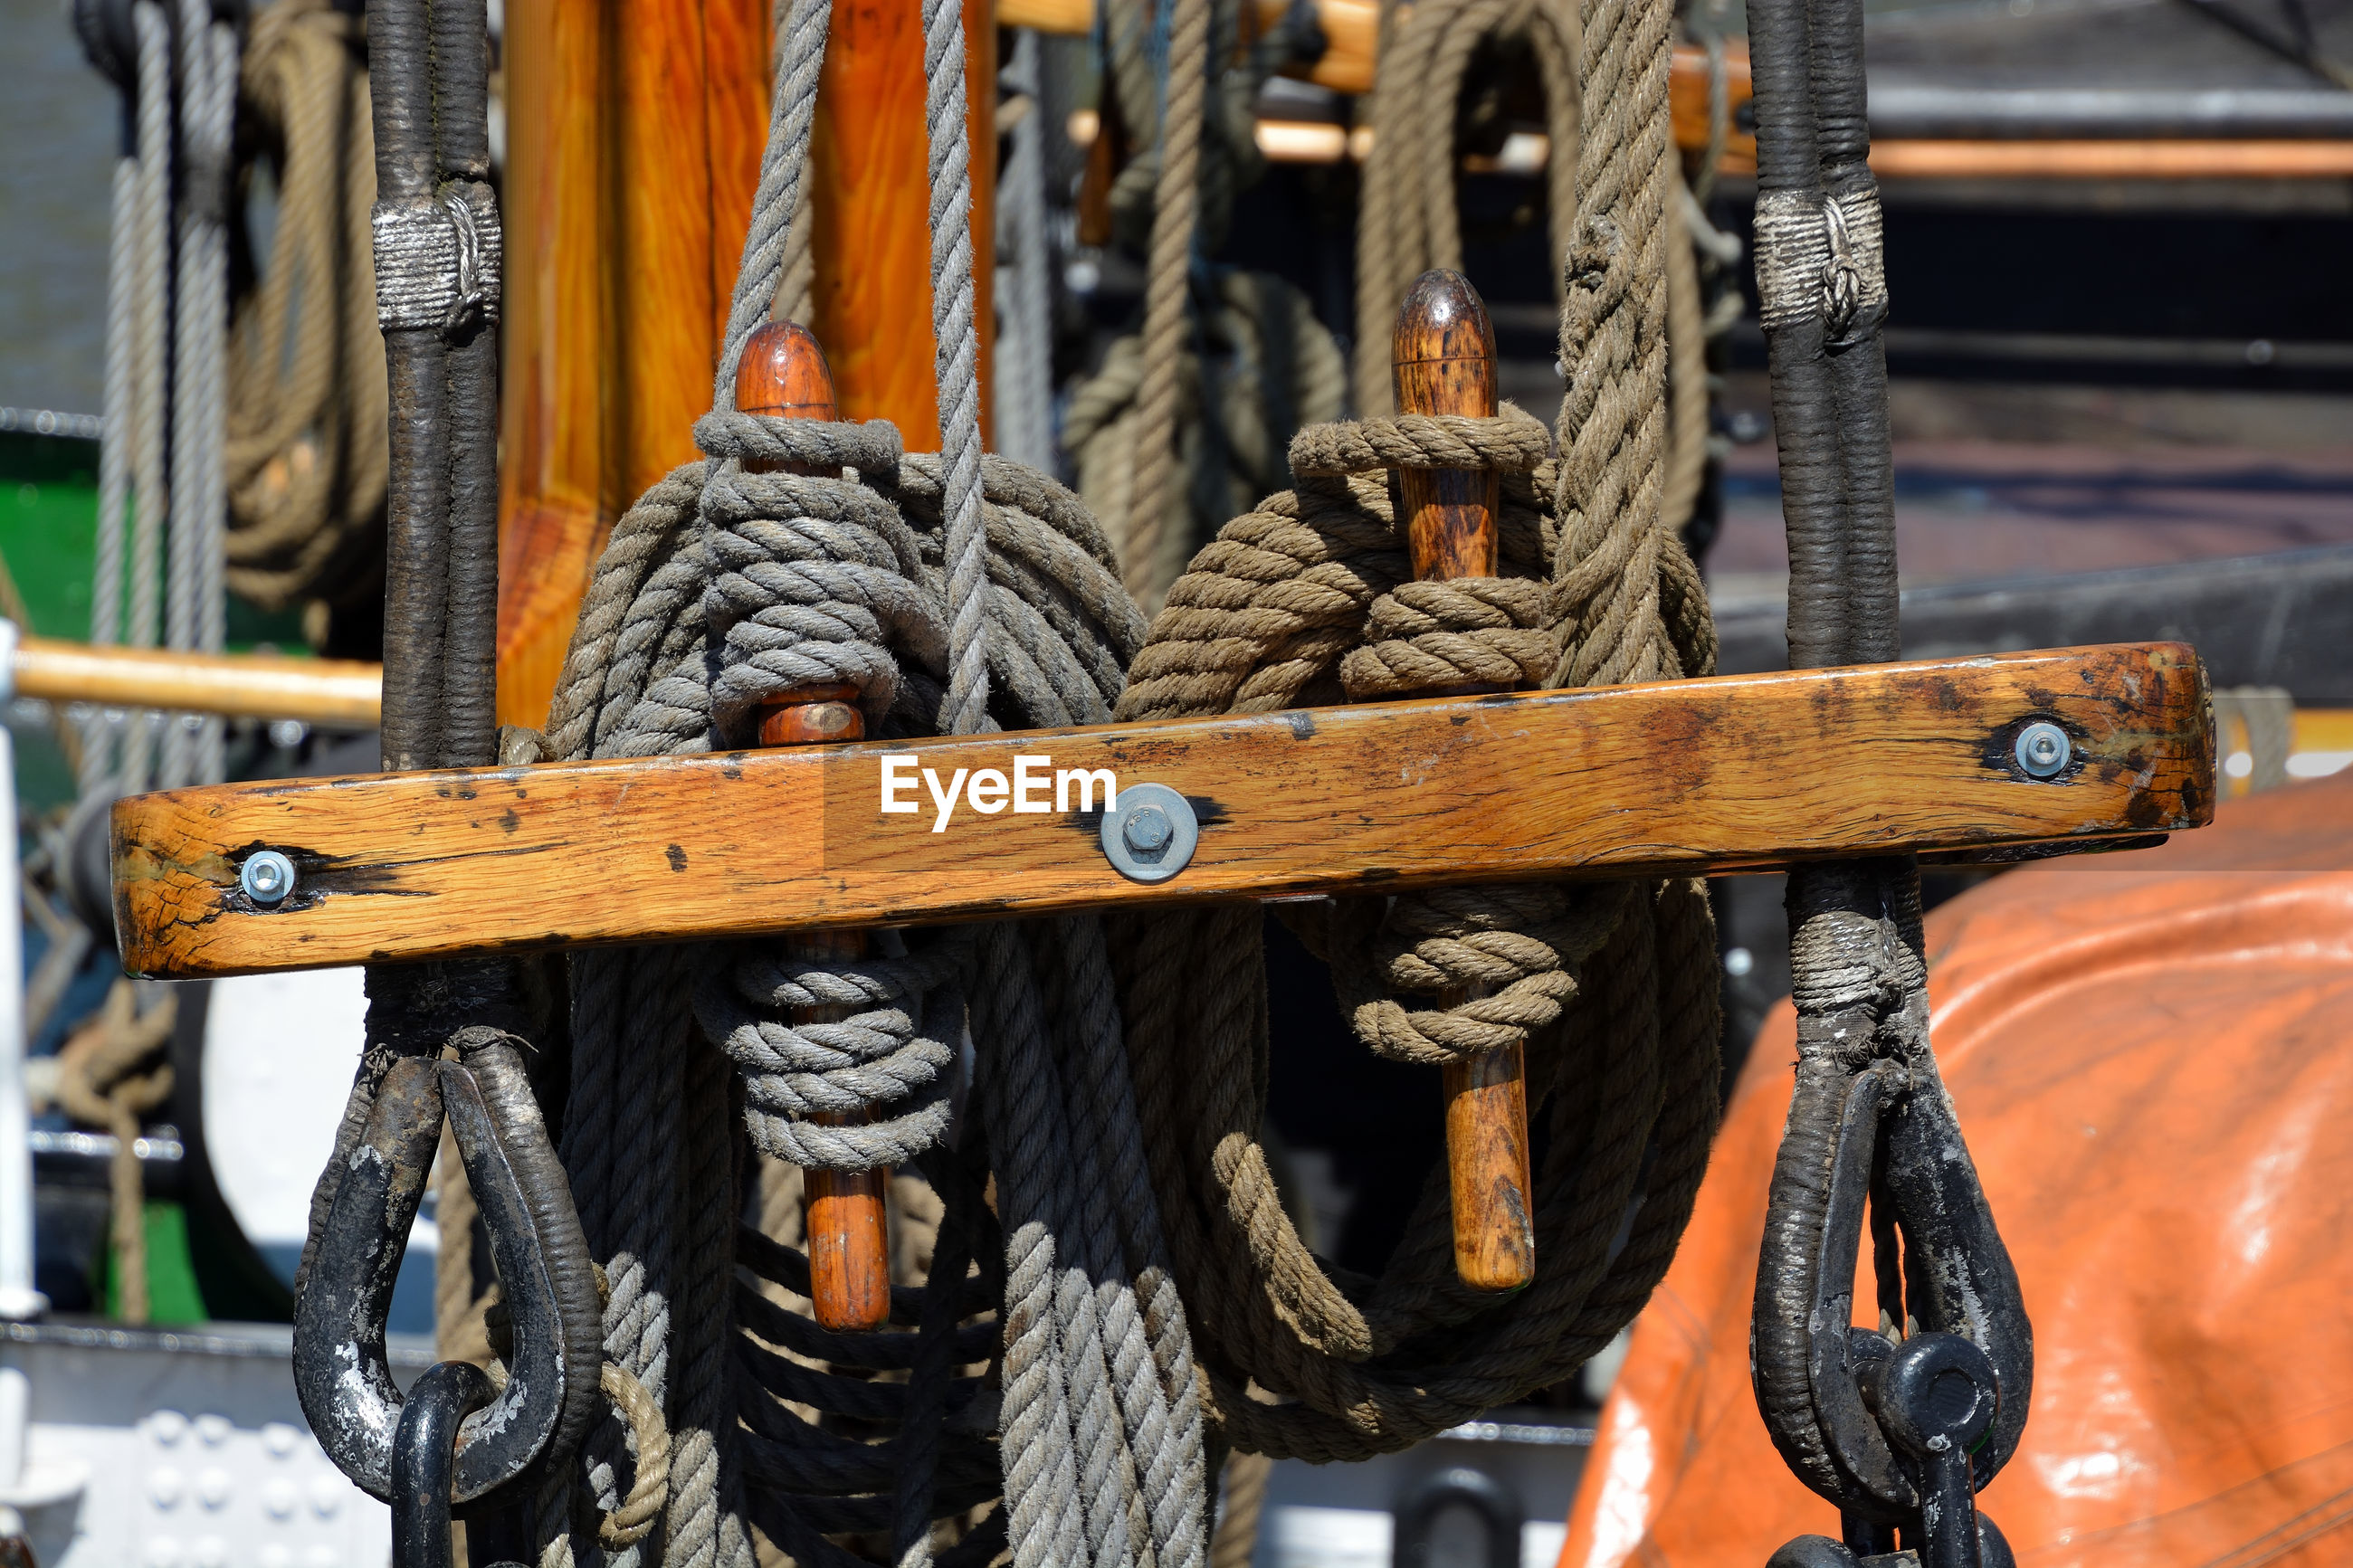 CLOSE-UP OF ROPES TIED UP ON METAL